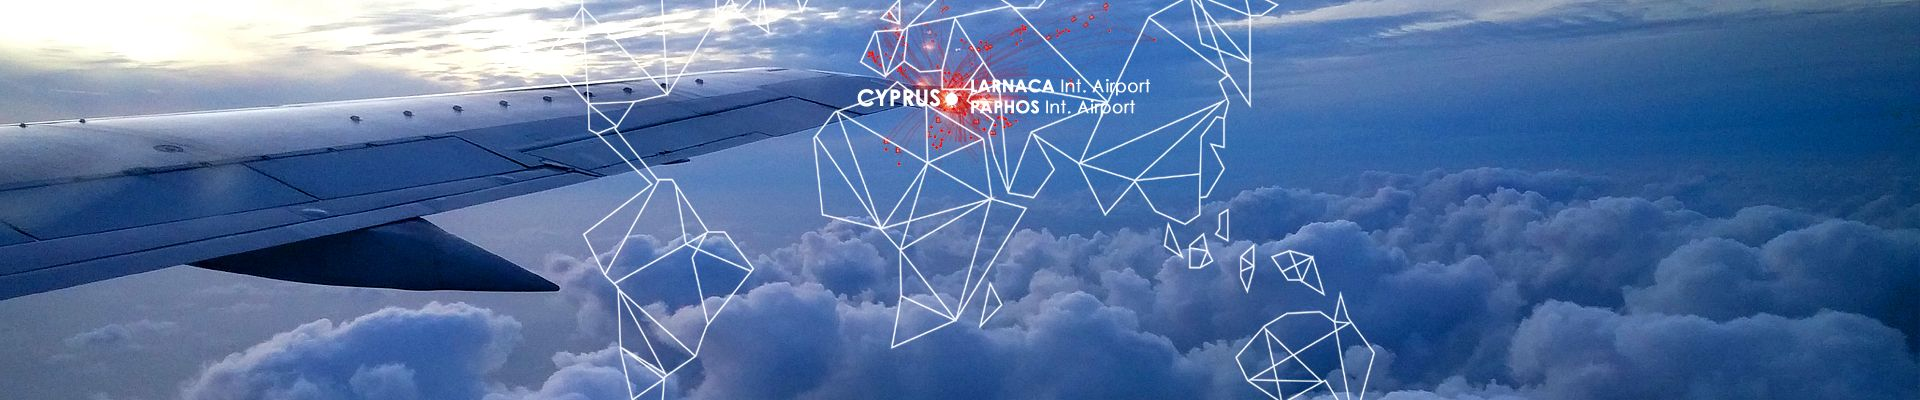 Flights to Cyprus